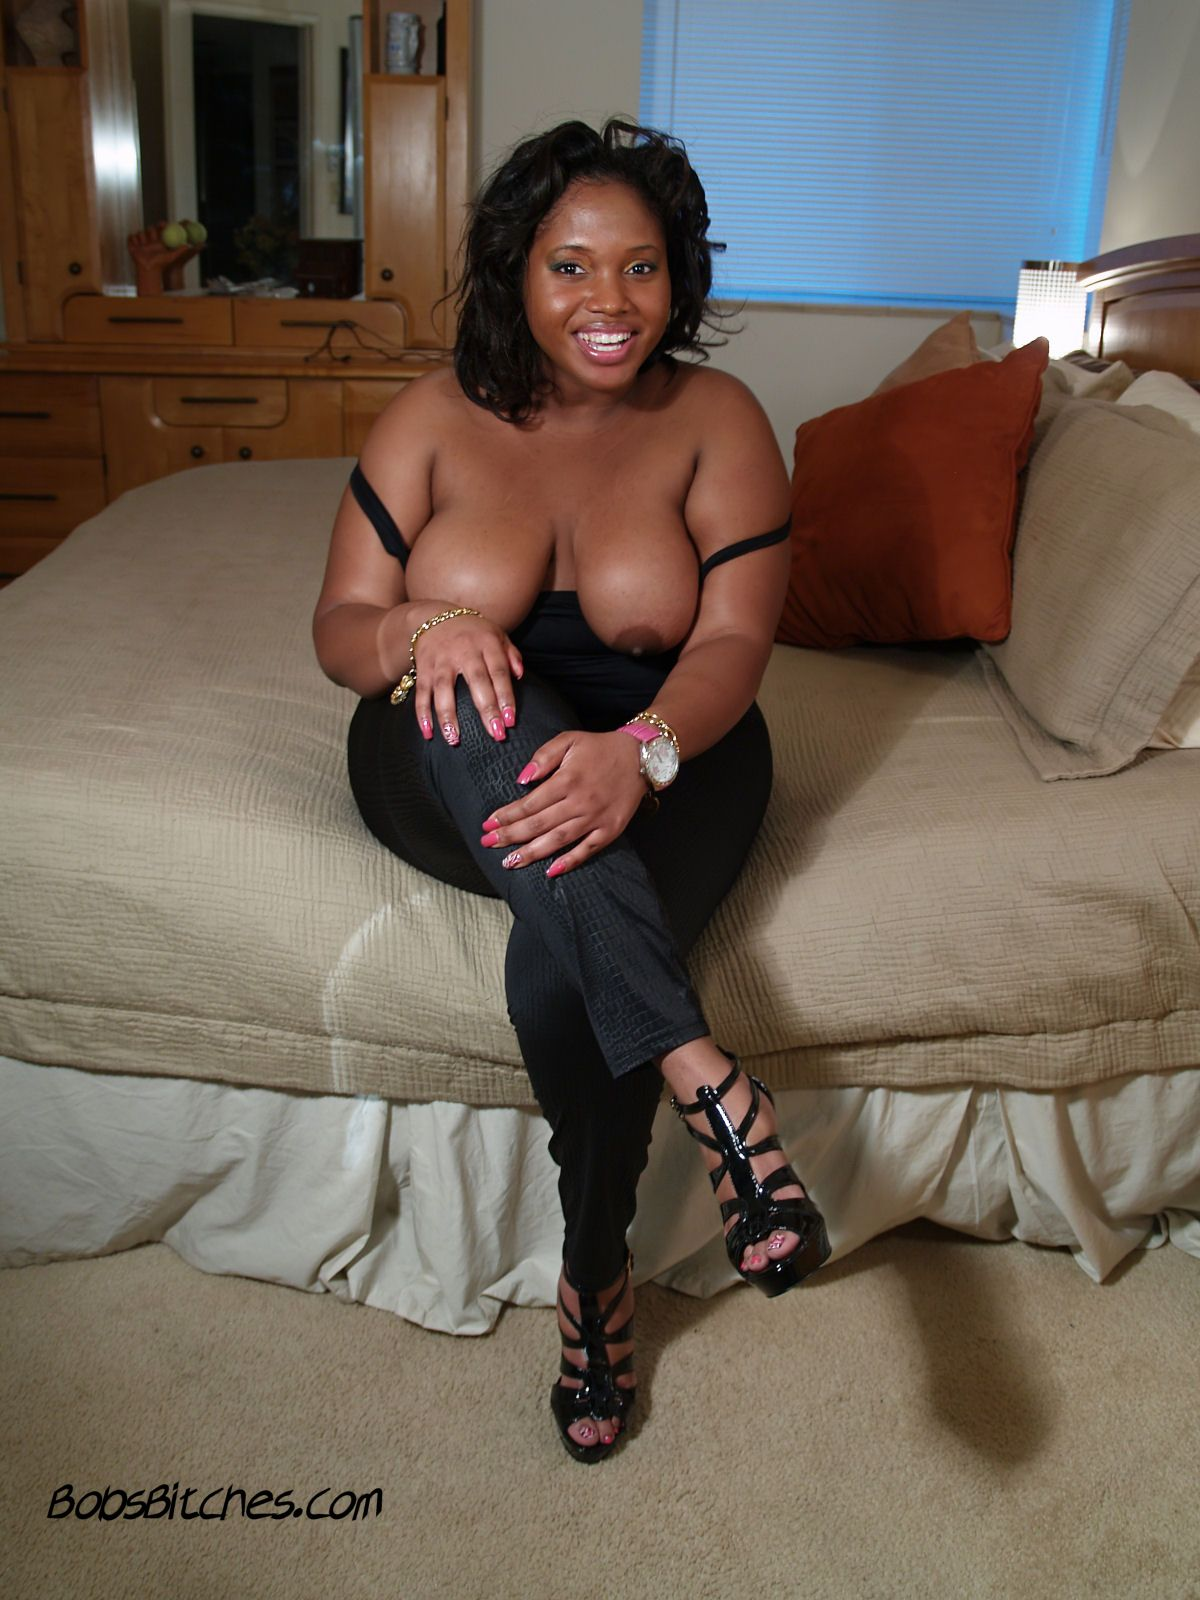 Big tit ebony bbw, Jewel, getting ready to suck cock.